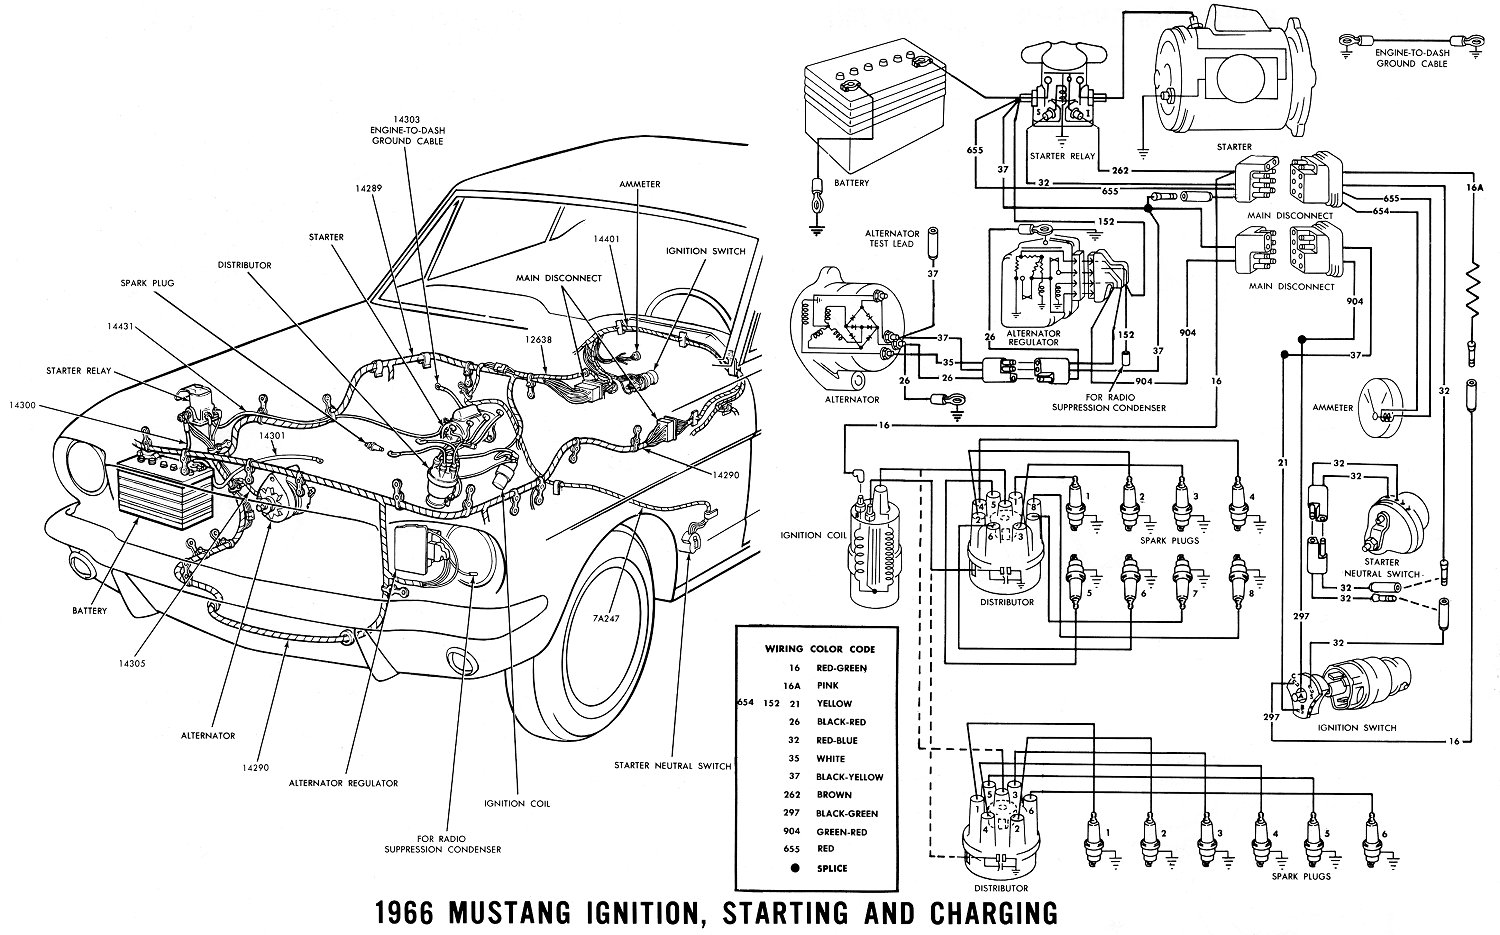 A Wiring Diagram For 1985 Mercedes Benz - Wiring Diagrams For Dummies on